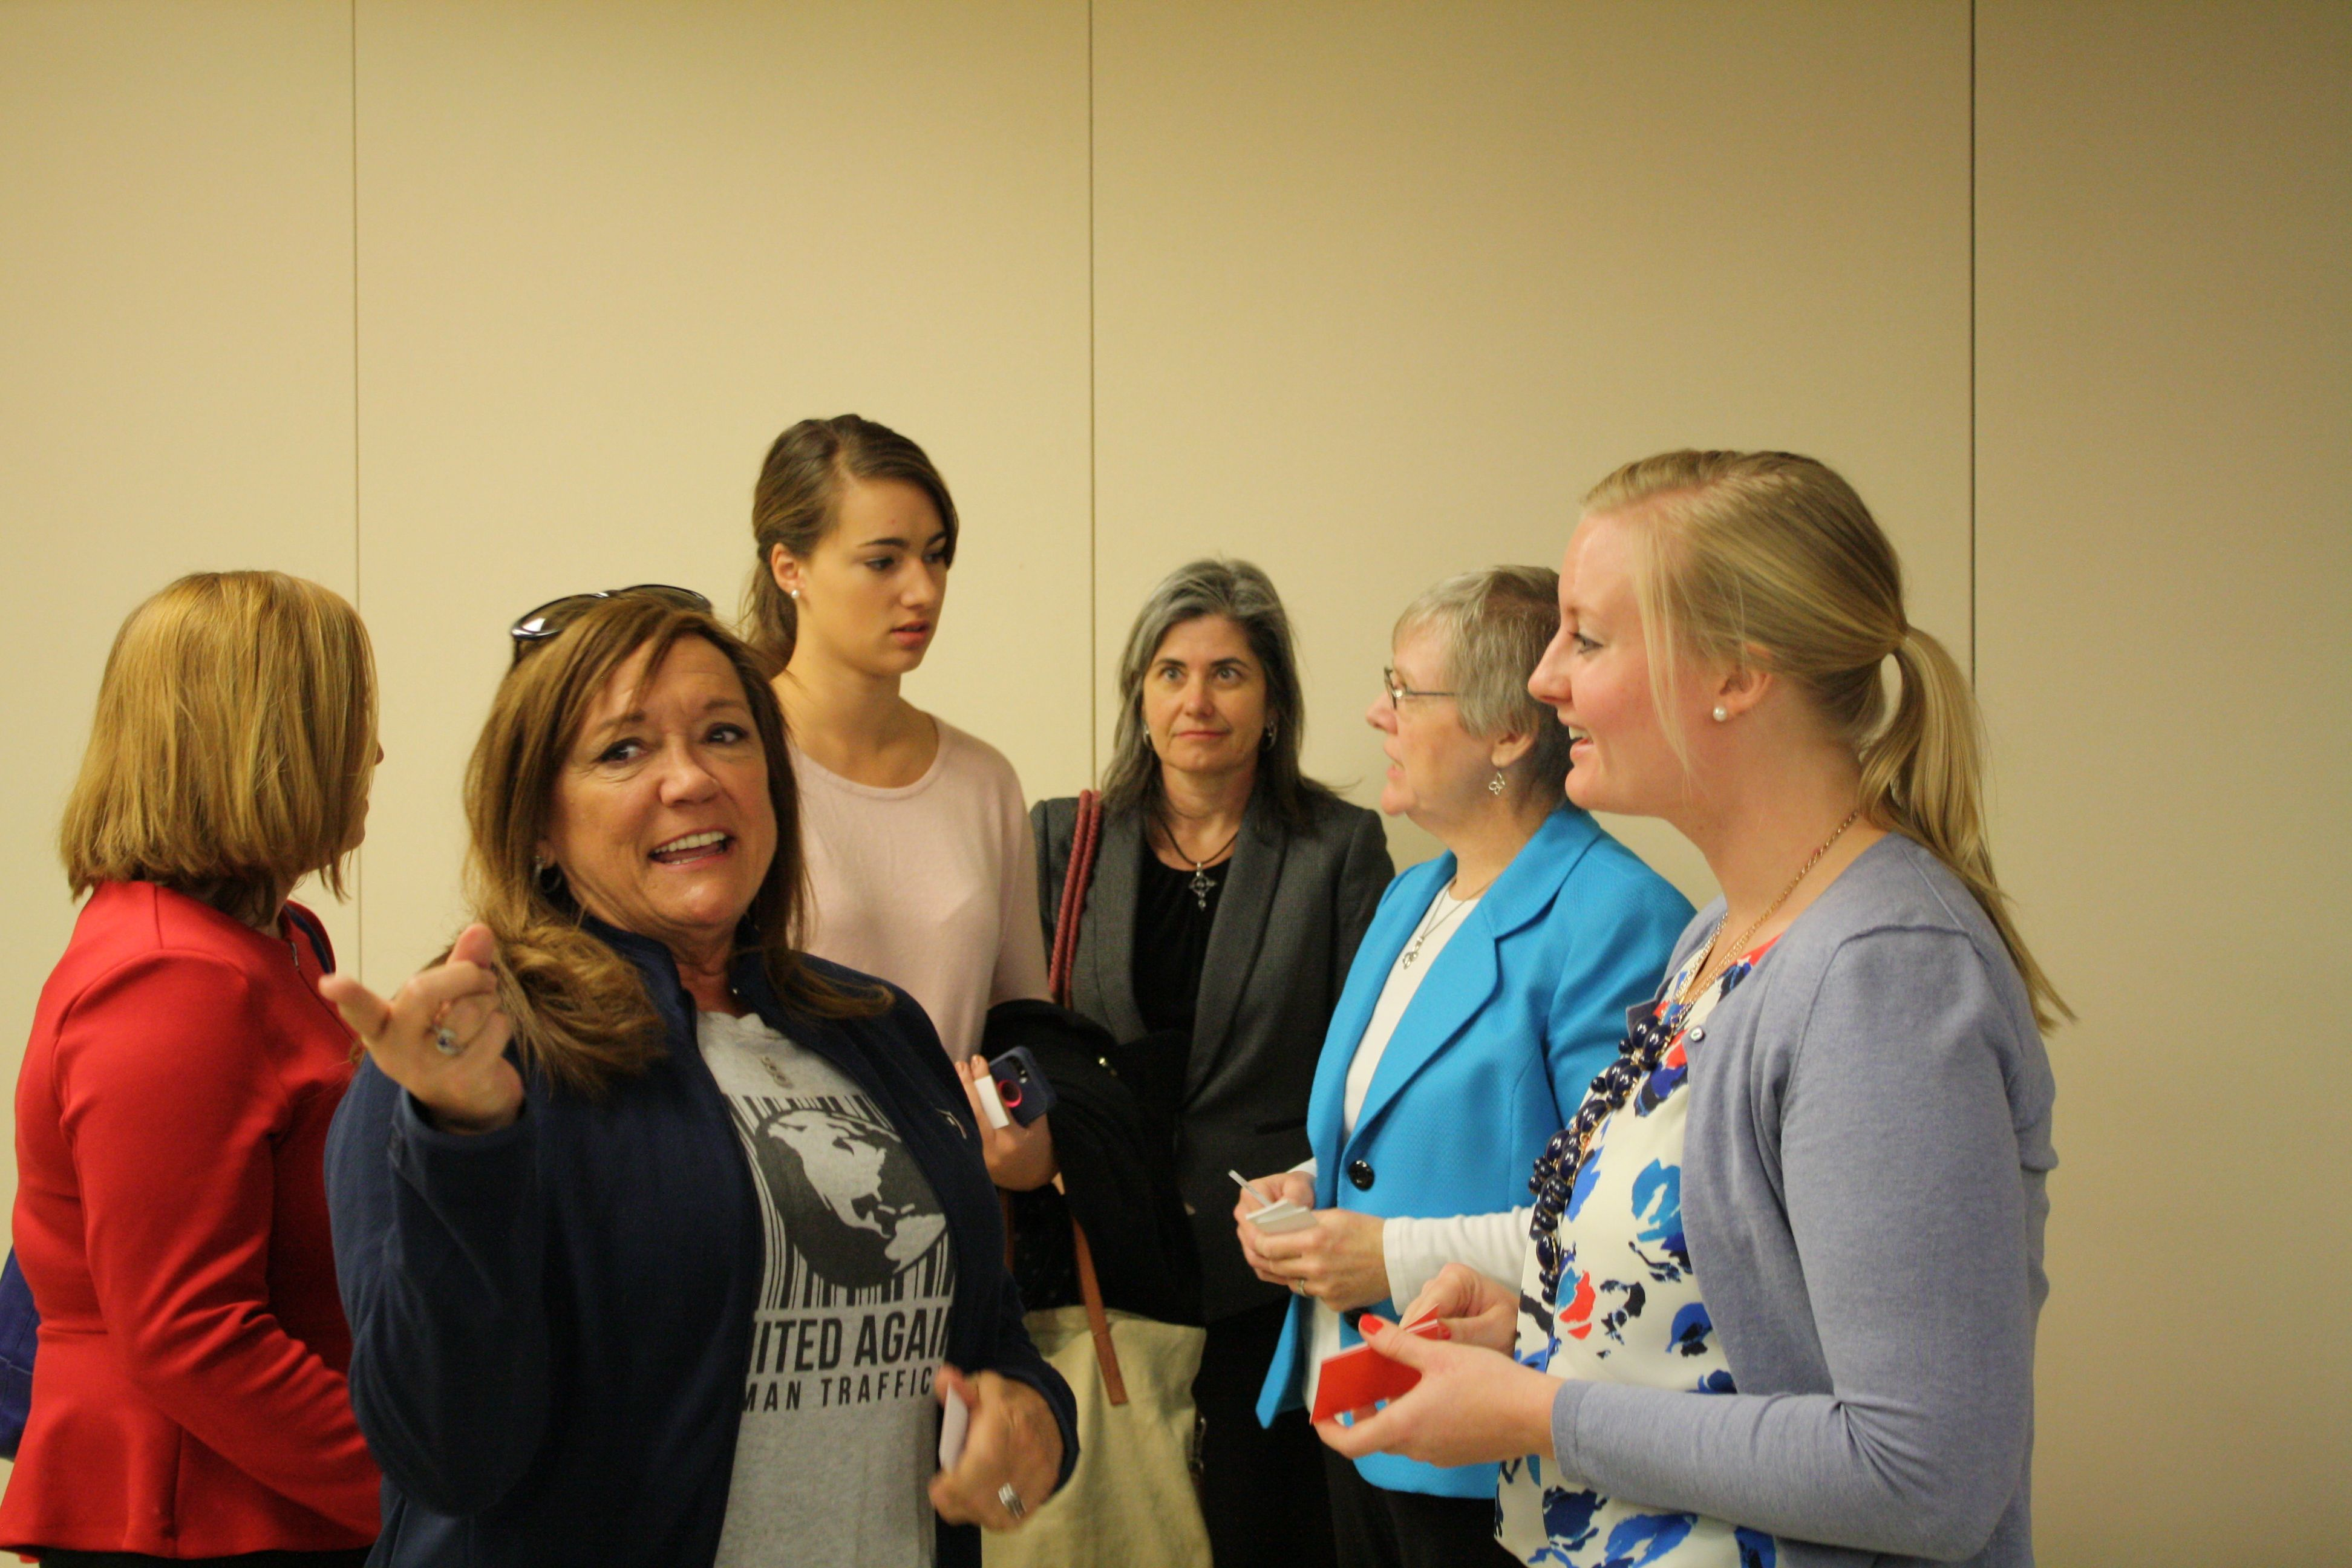 Attendees of an information session on human trafficking at First Baptist Church of Austin visit before walking to the Texas Capitol for a press conference about ending human trafficking on Thursday, Feb. 12, 2015.